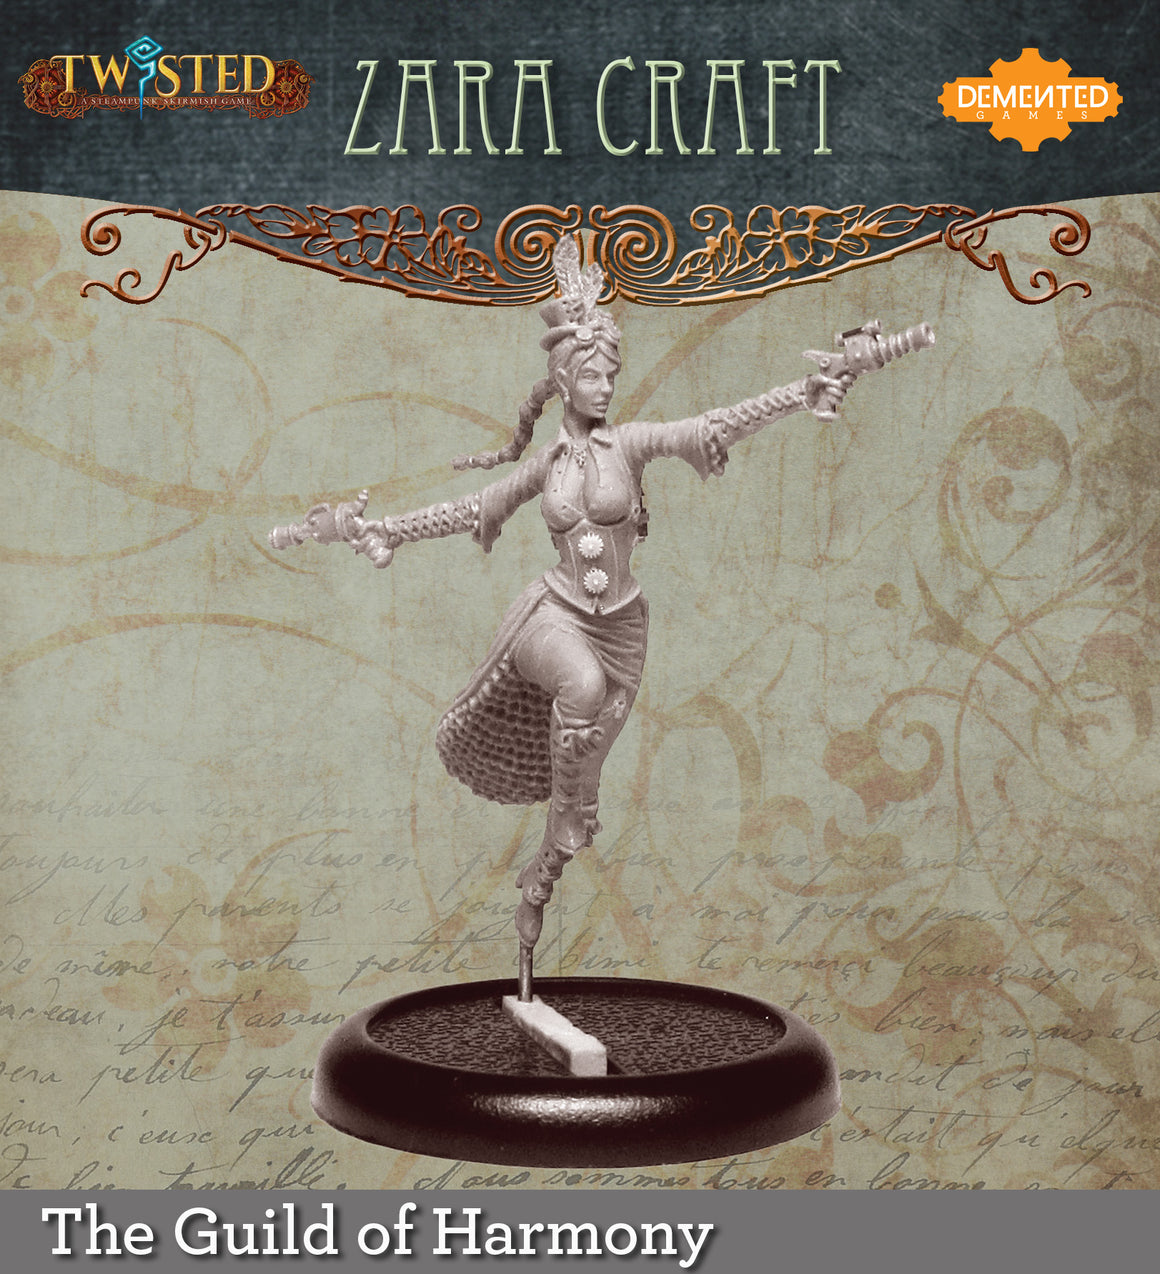 Zara Craft